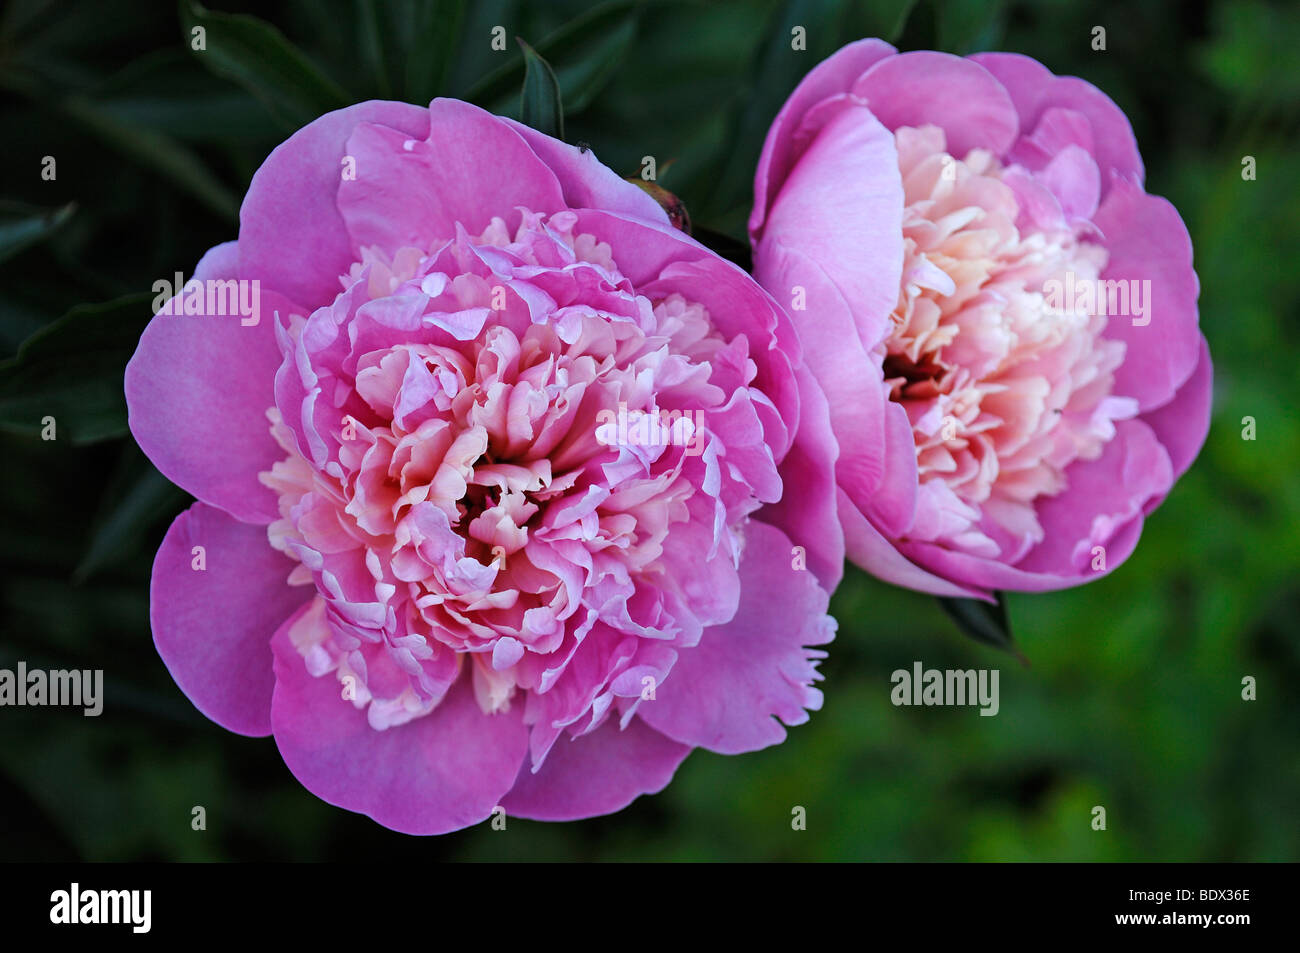 Peonies (Paeonia officinalis) flowers Stock Photo